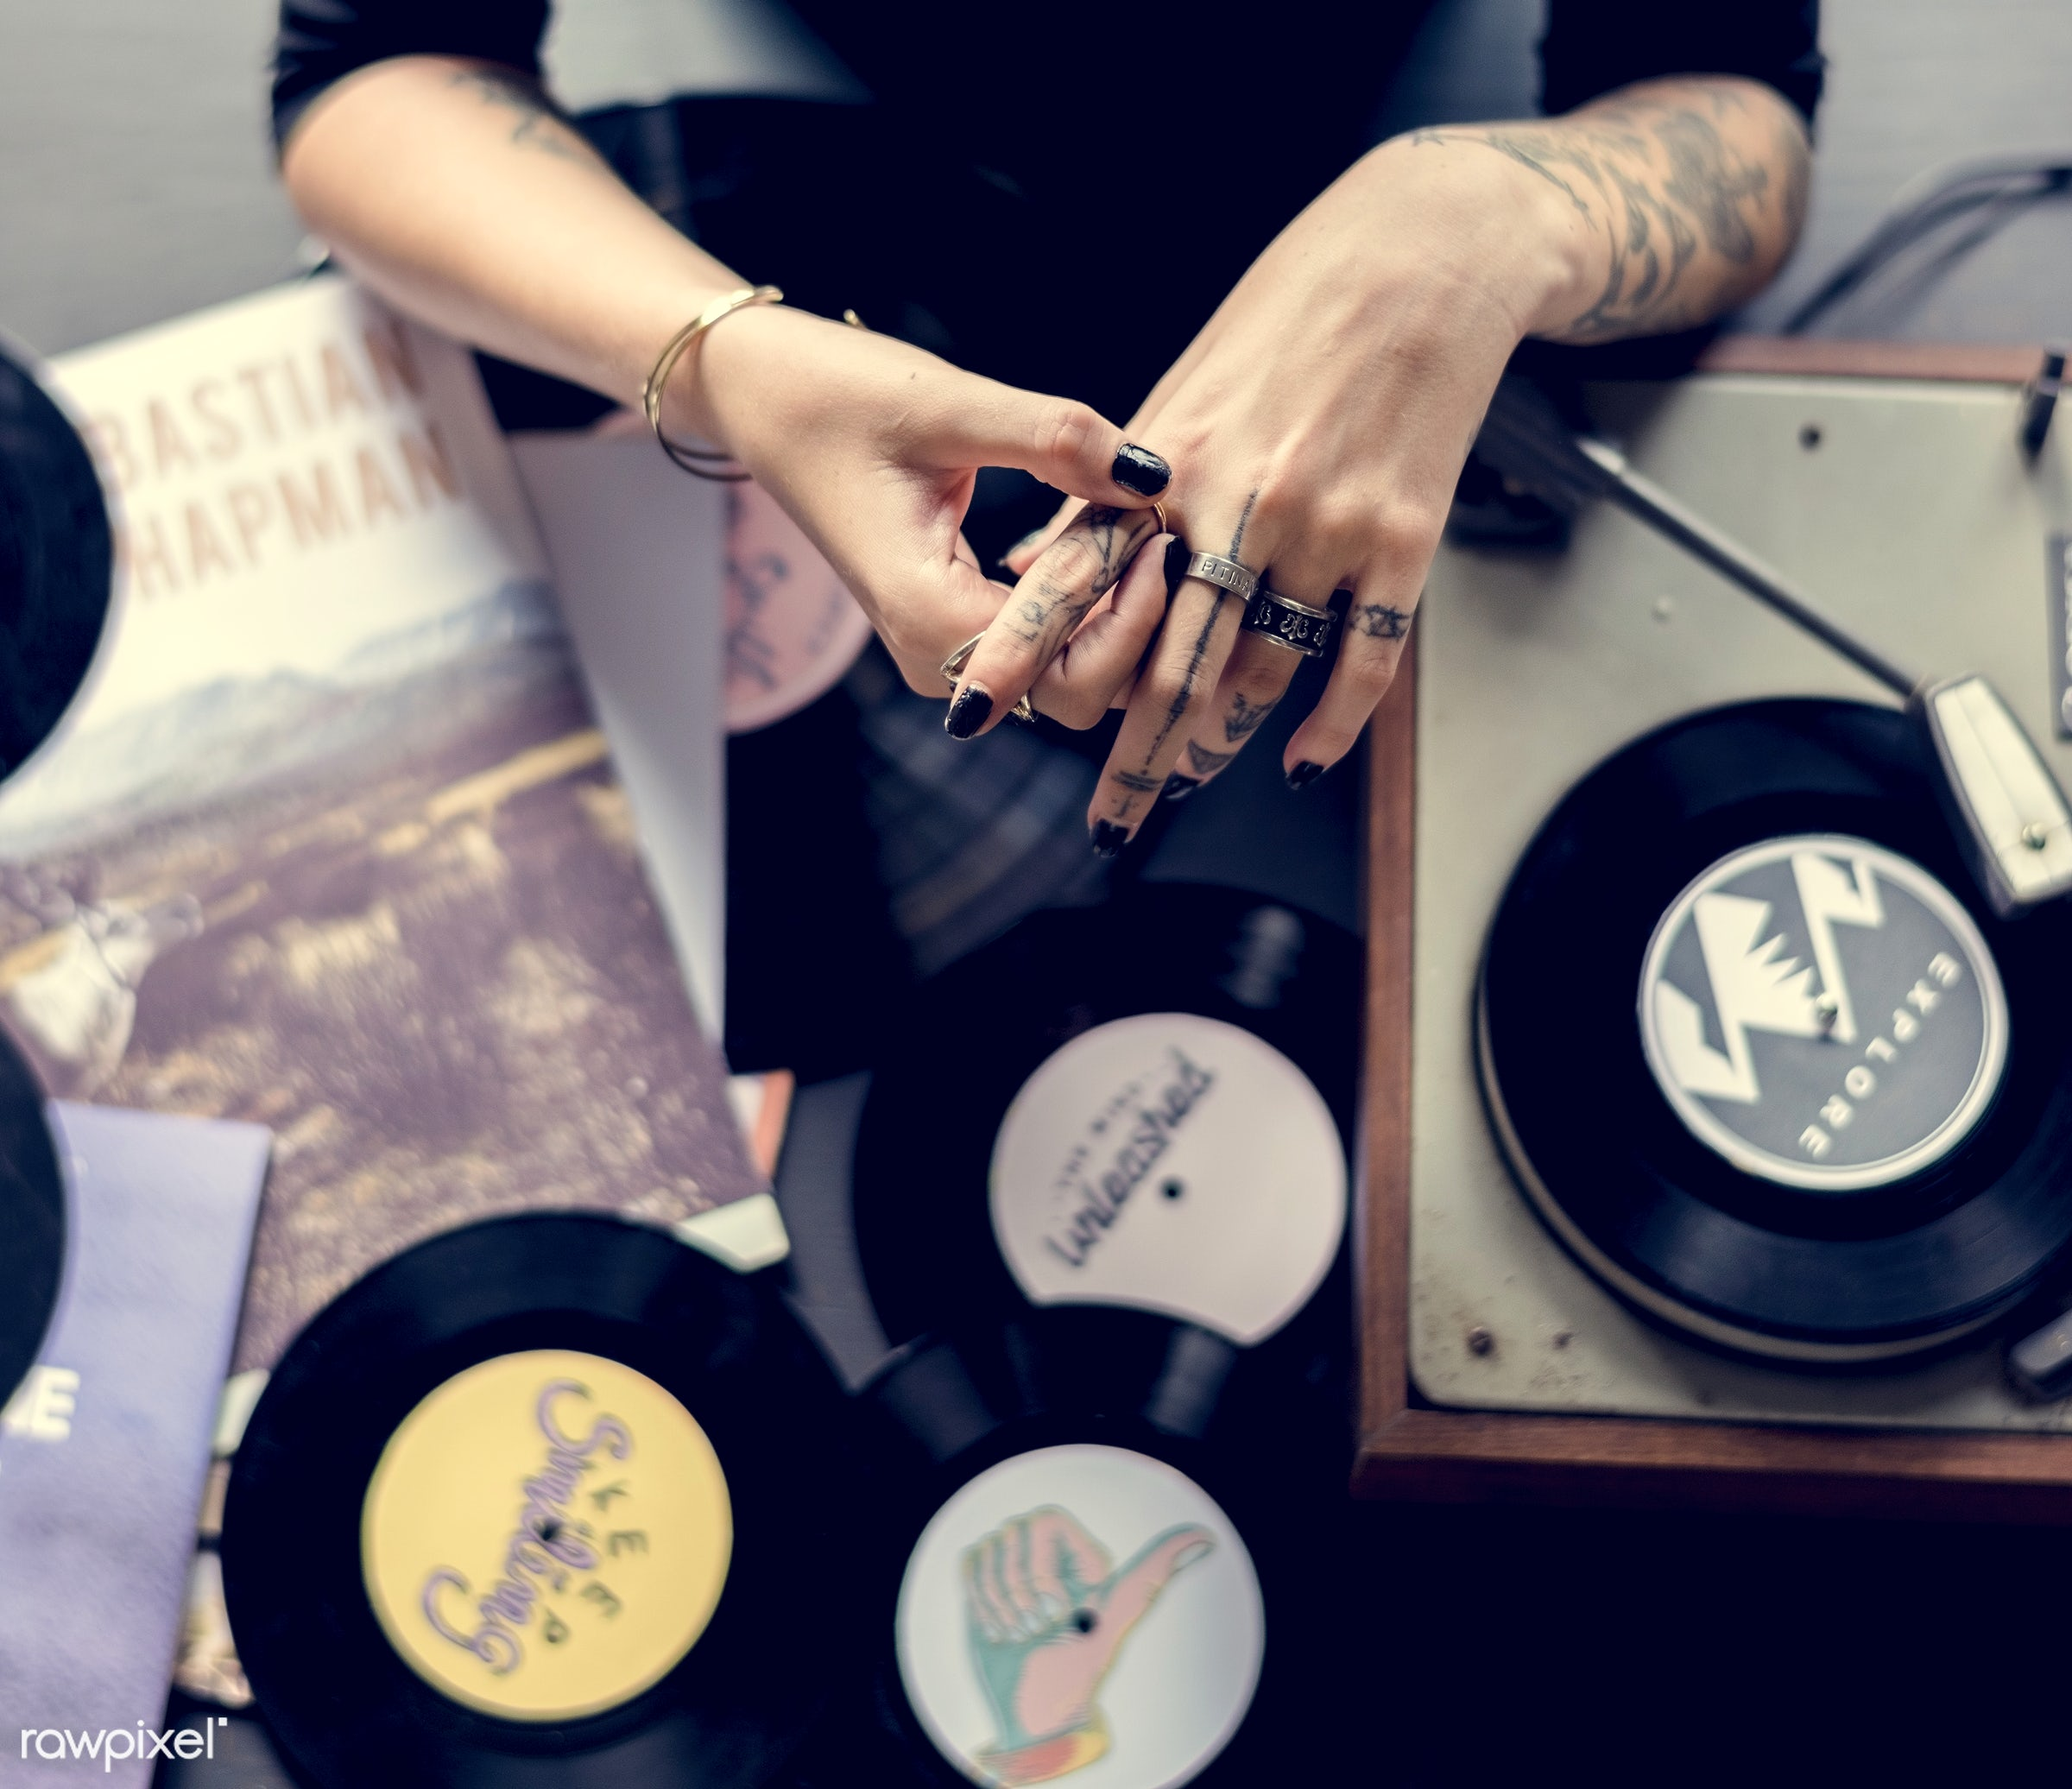 gramophone, person, retro, disc jockey, people, style, hands, woman, dj, vinyl, tattoo, classic, turntable, music, scratch,...